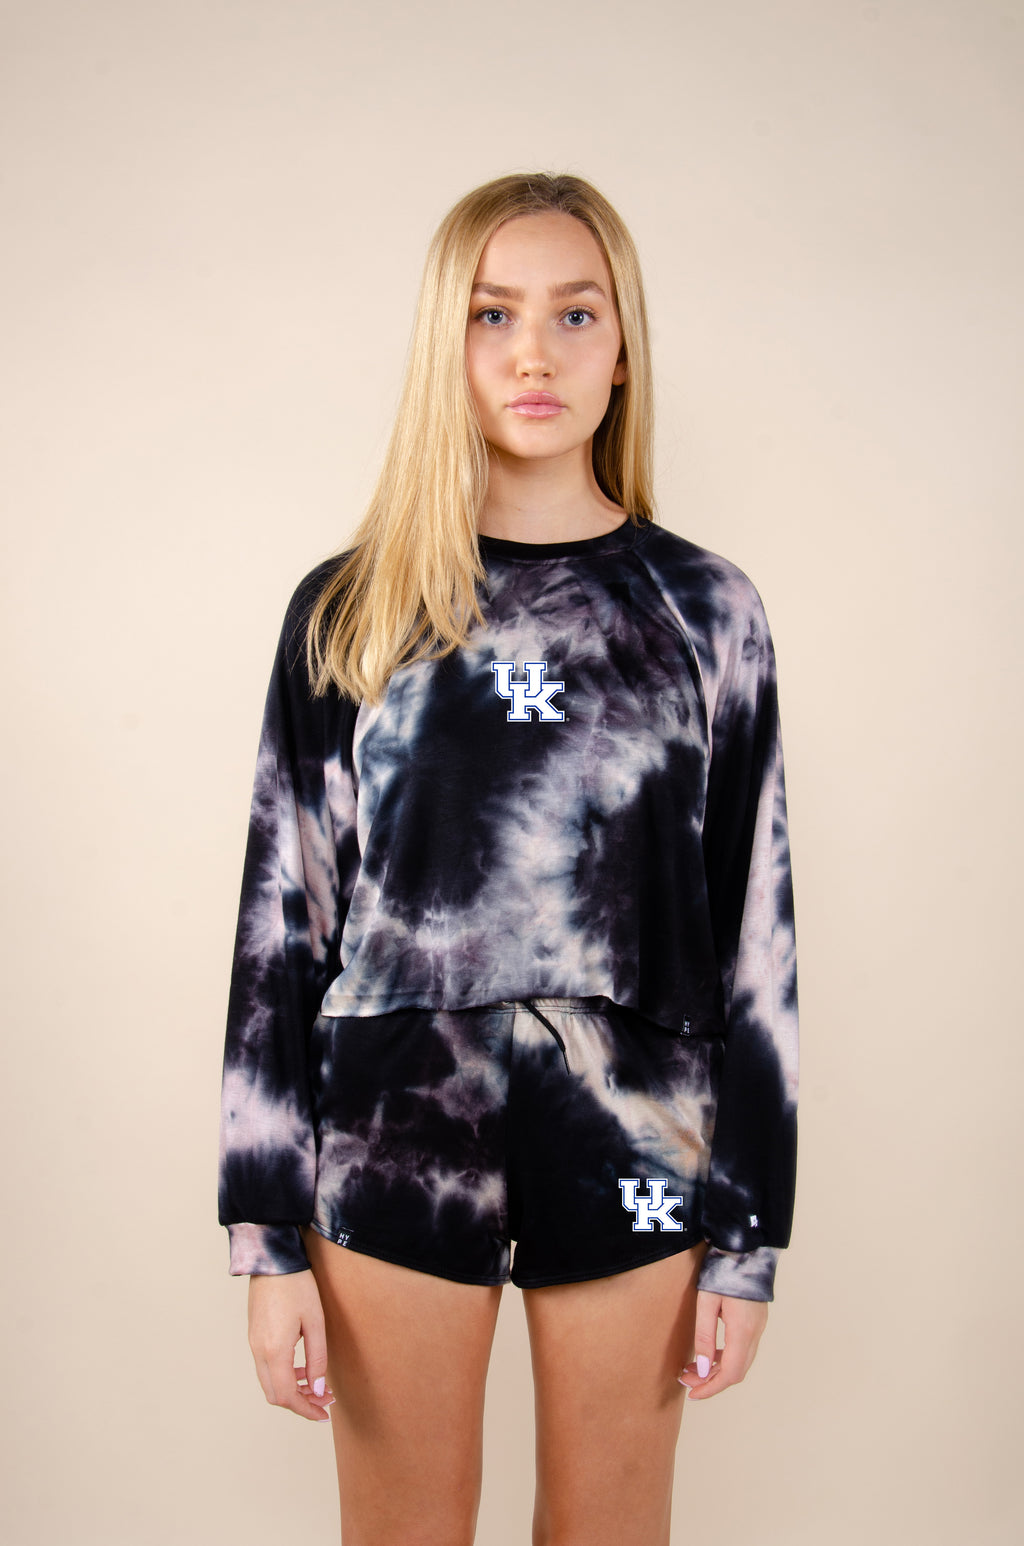 MTO University of Kentucky Tie Dye Dreams Top